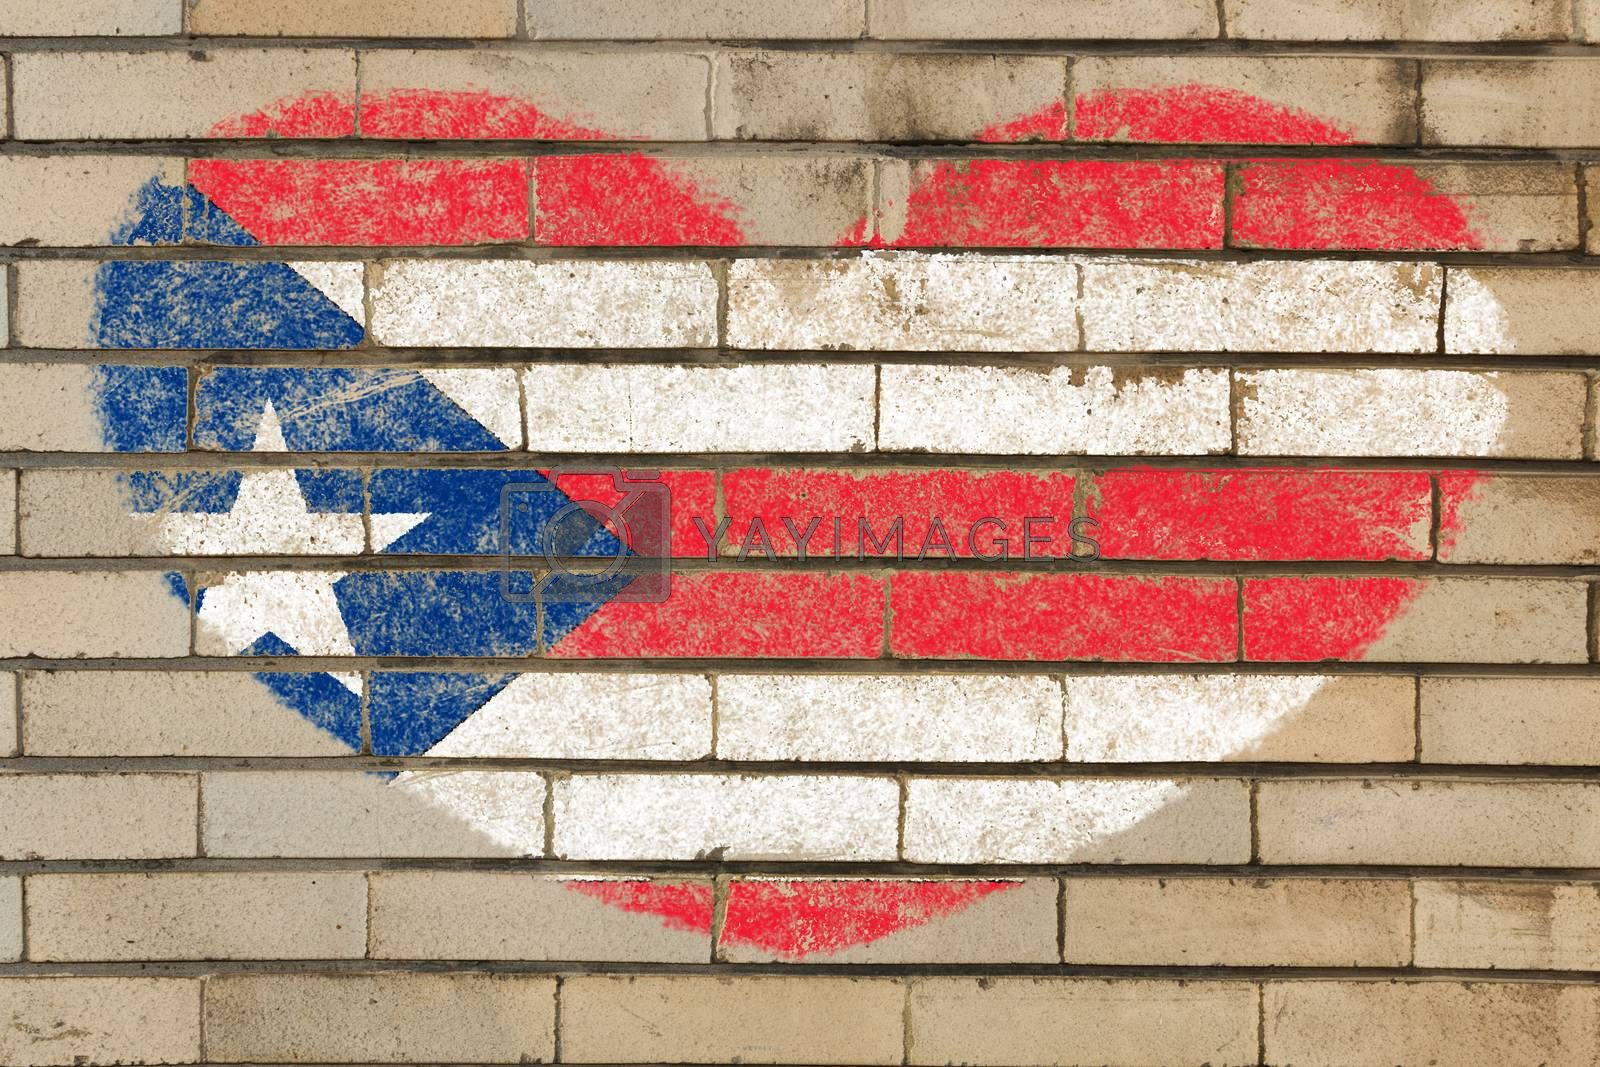 heart shaped flag in colors of puerto rico on brick wall